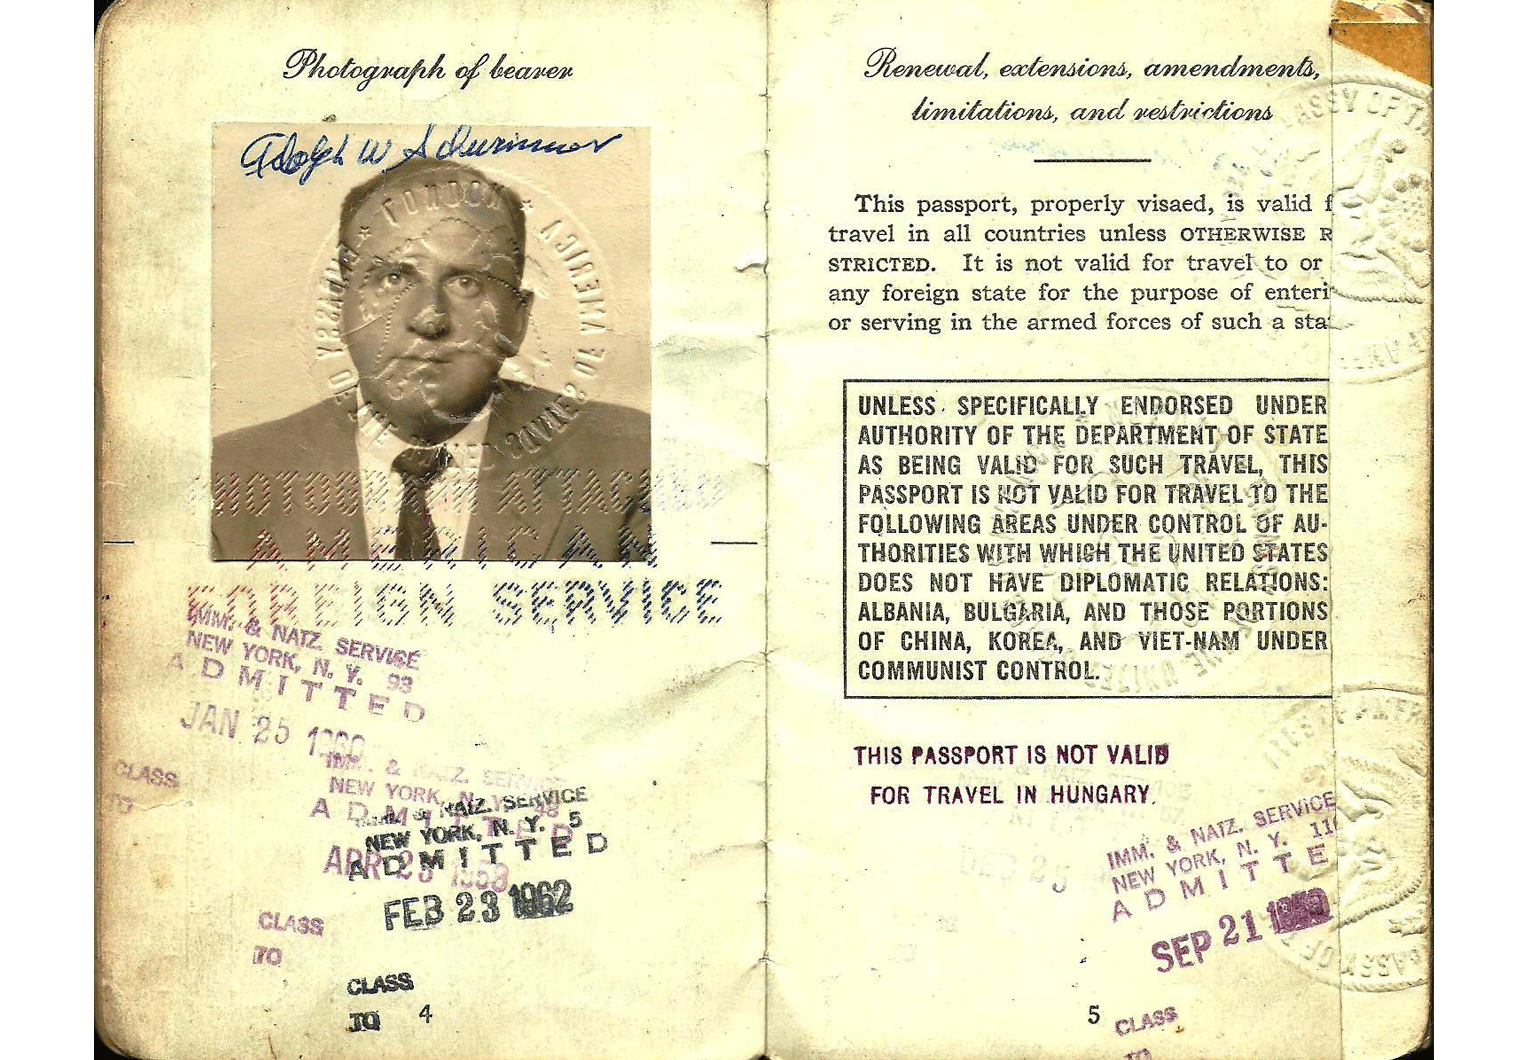 Passport issued to Al Schwimmer